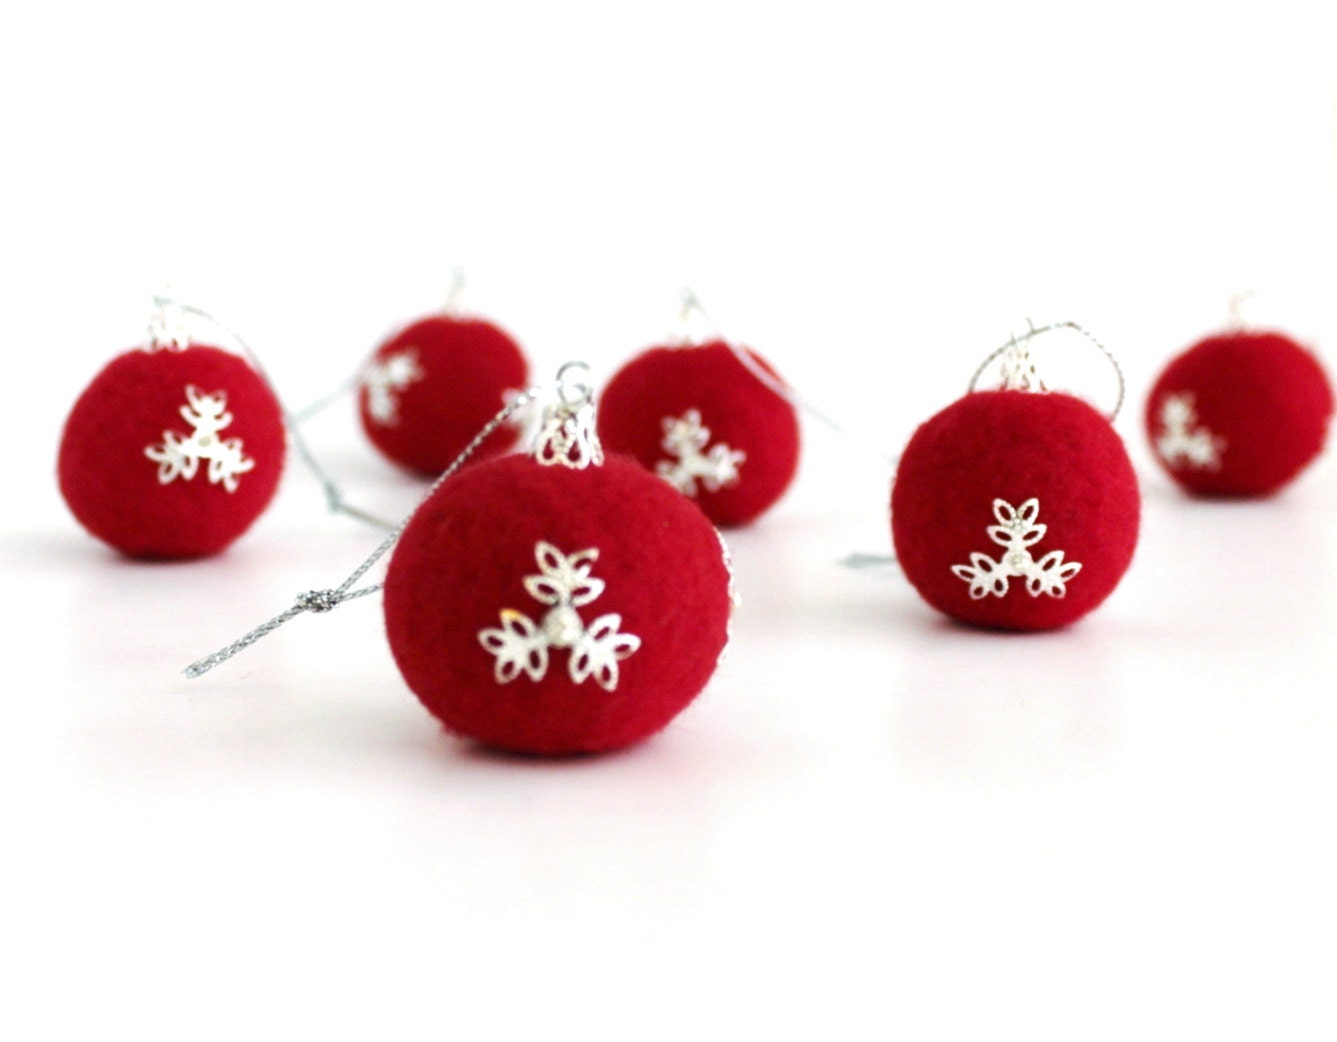 Christmas Ornaments - Red Felt Balls - Set of 6 - TheDwarfRam